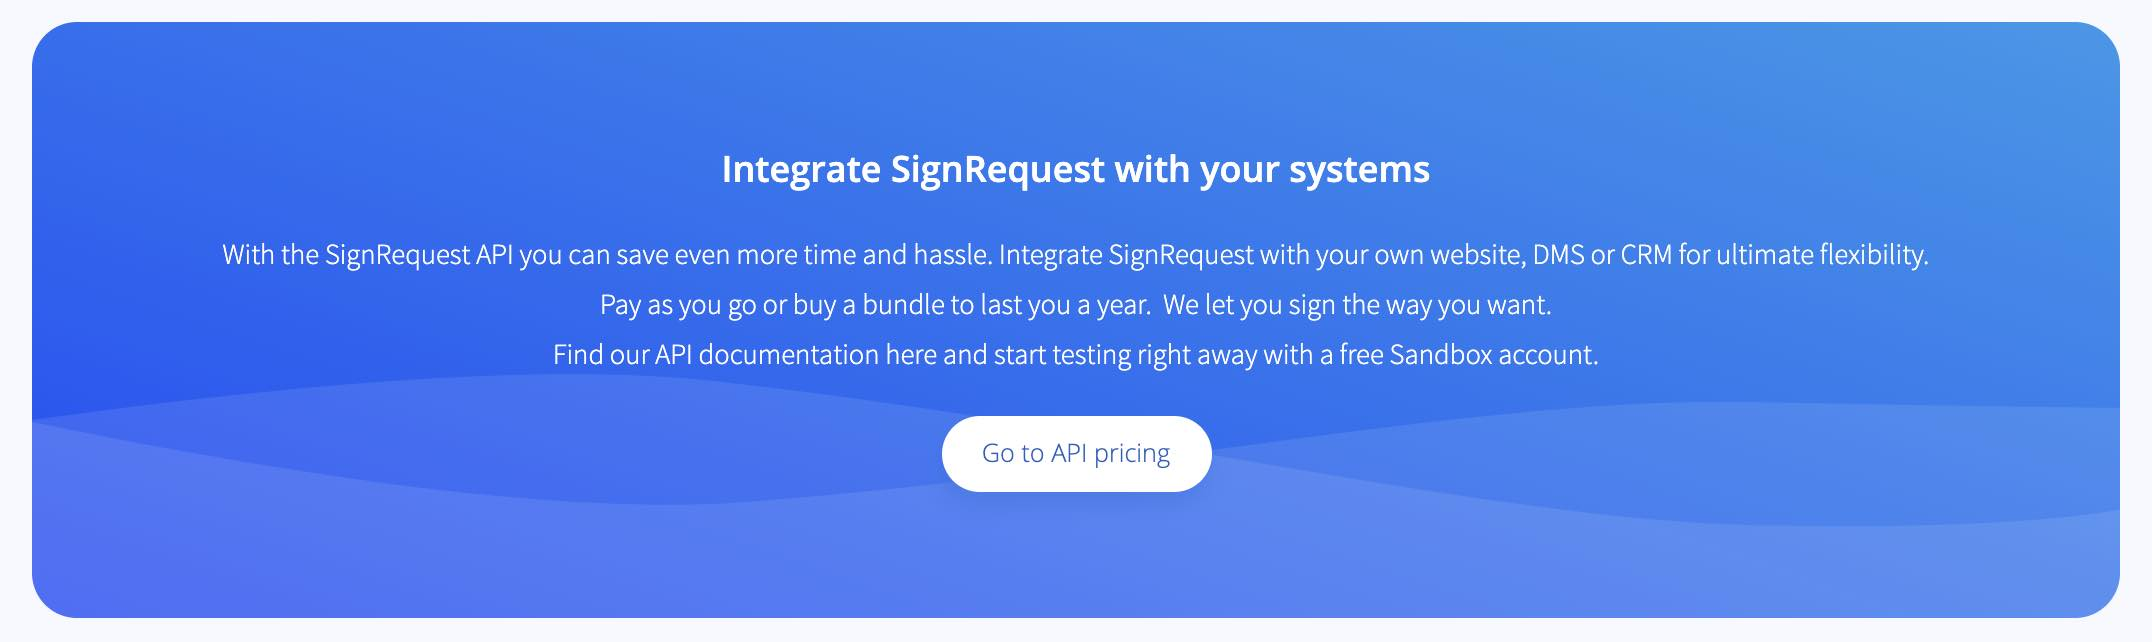 Integrate_SignRequest_with_your_systems.jpg